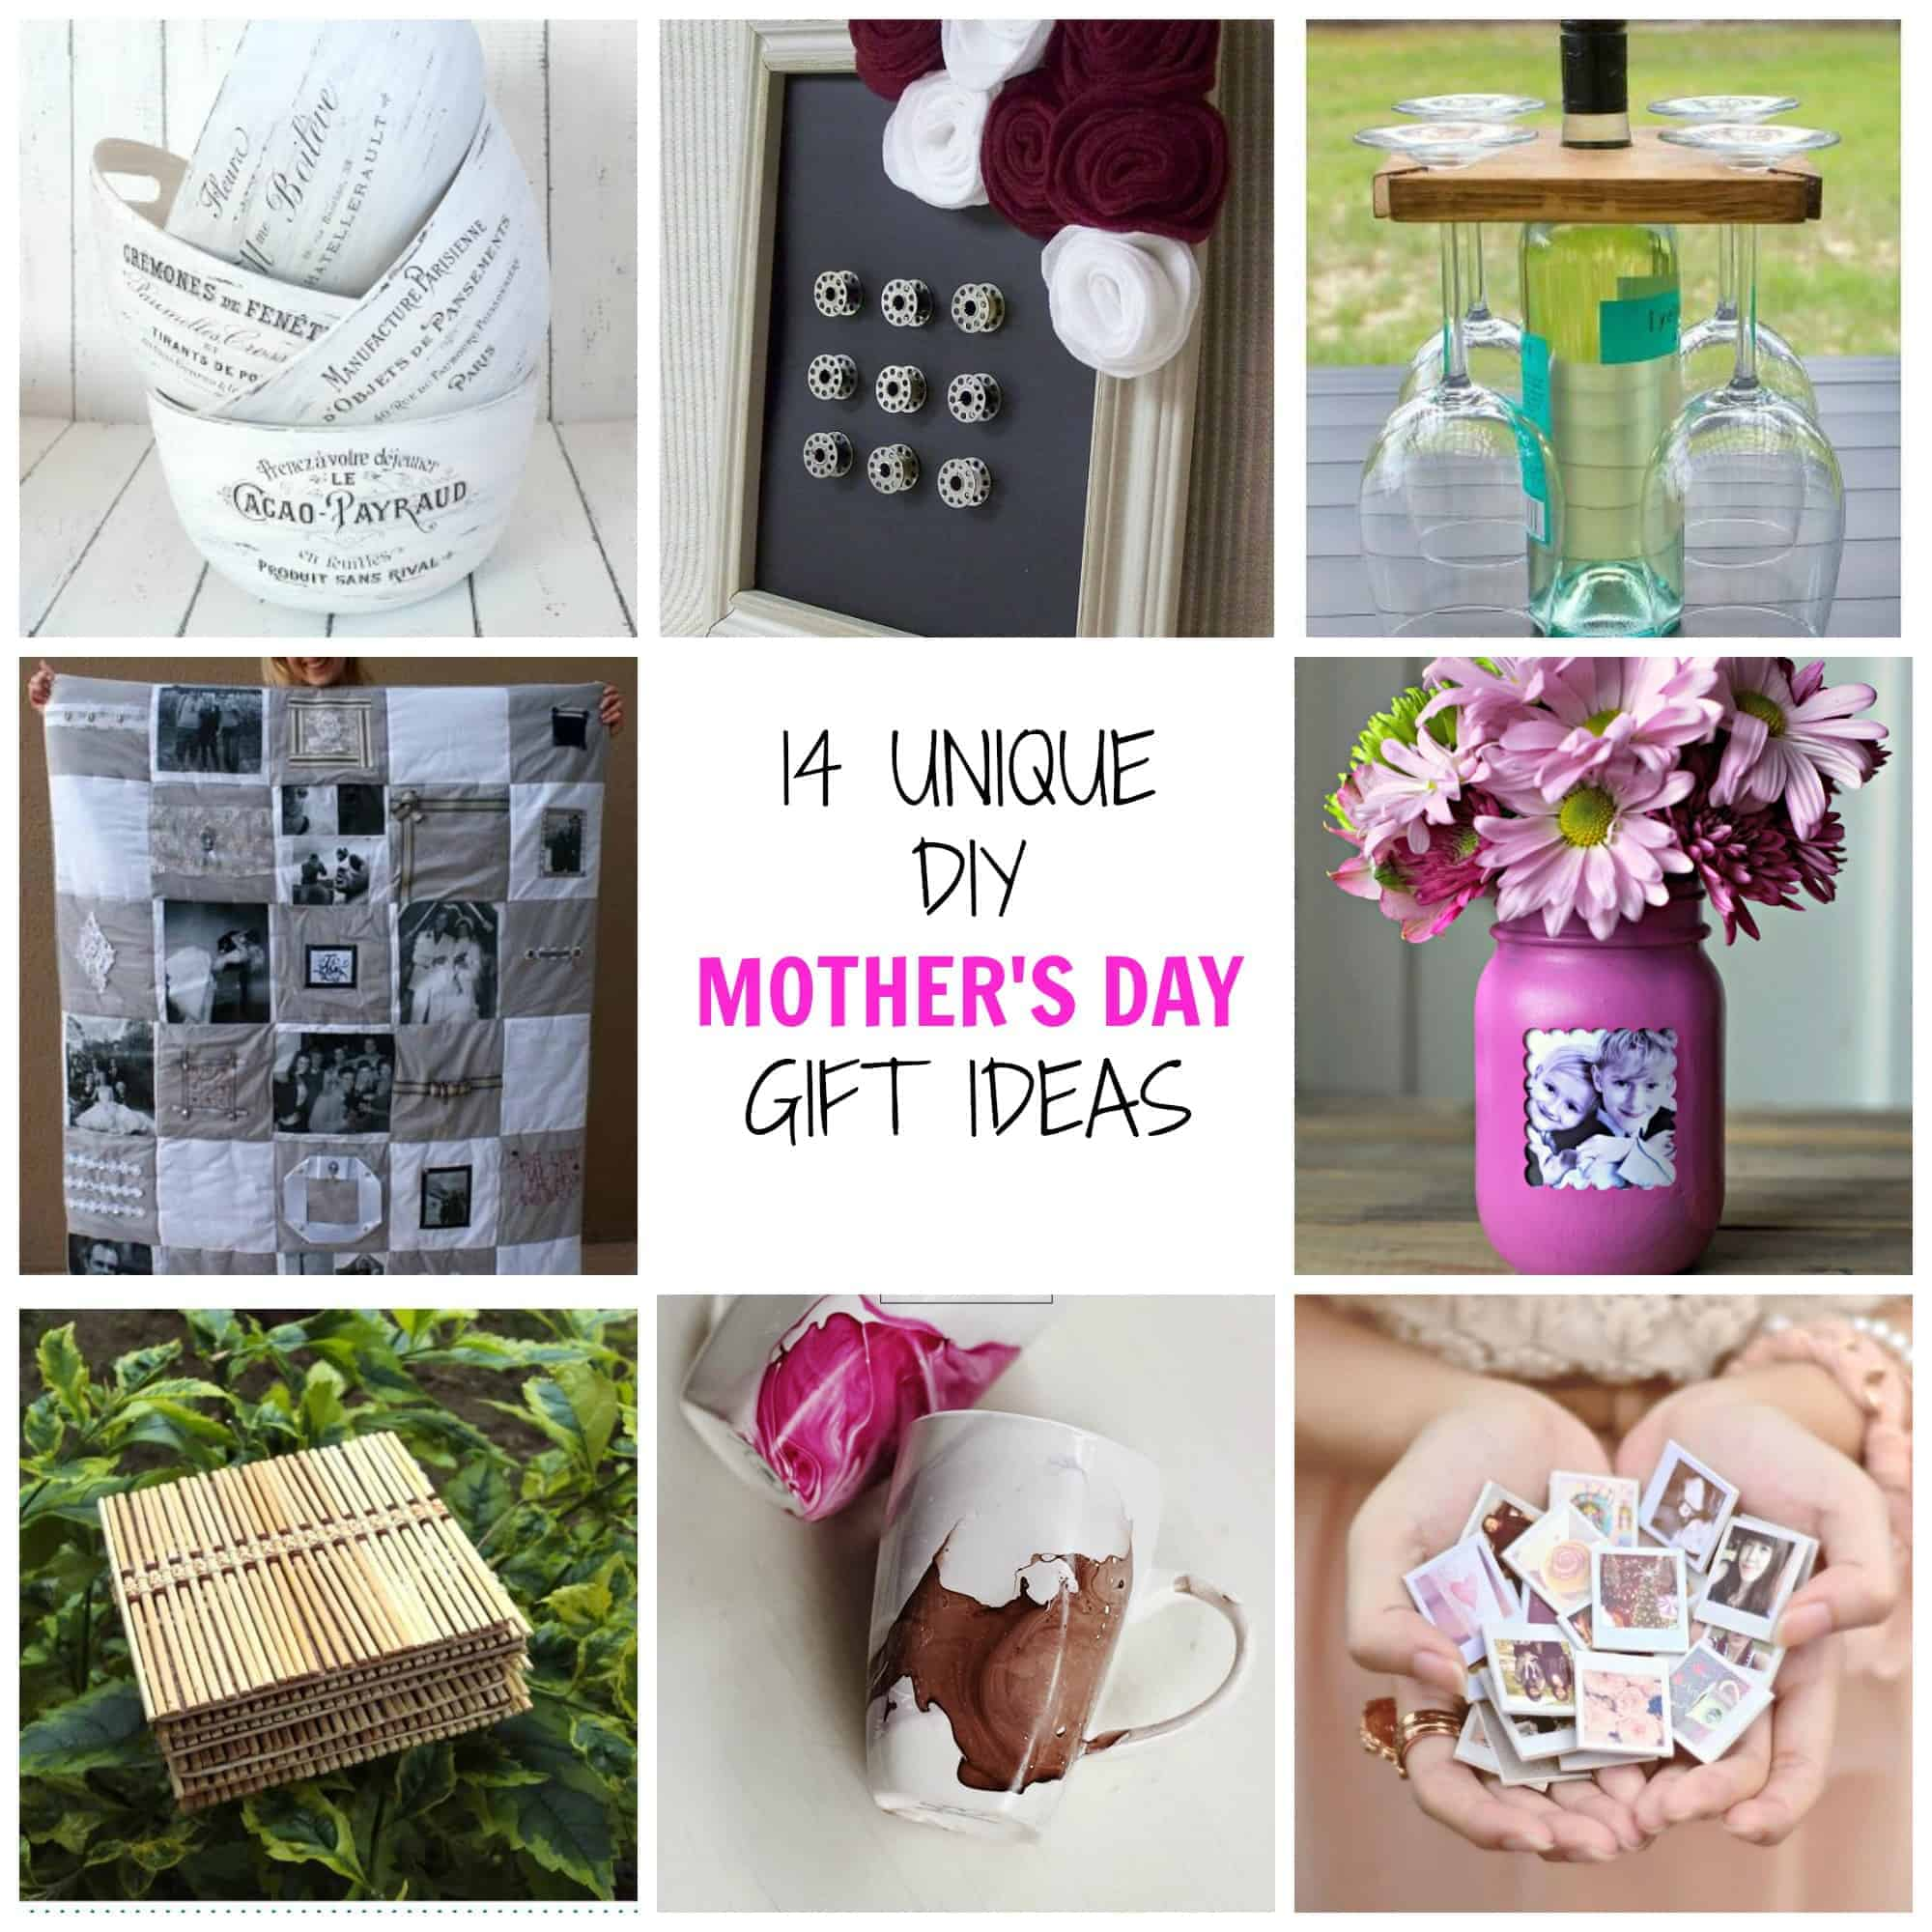 14 Unique DIY Mother's Day Gifts